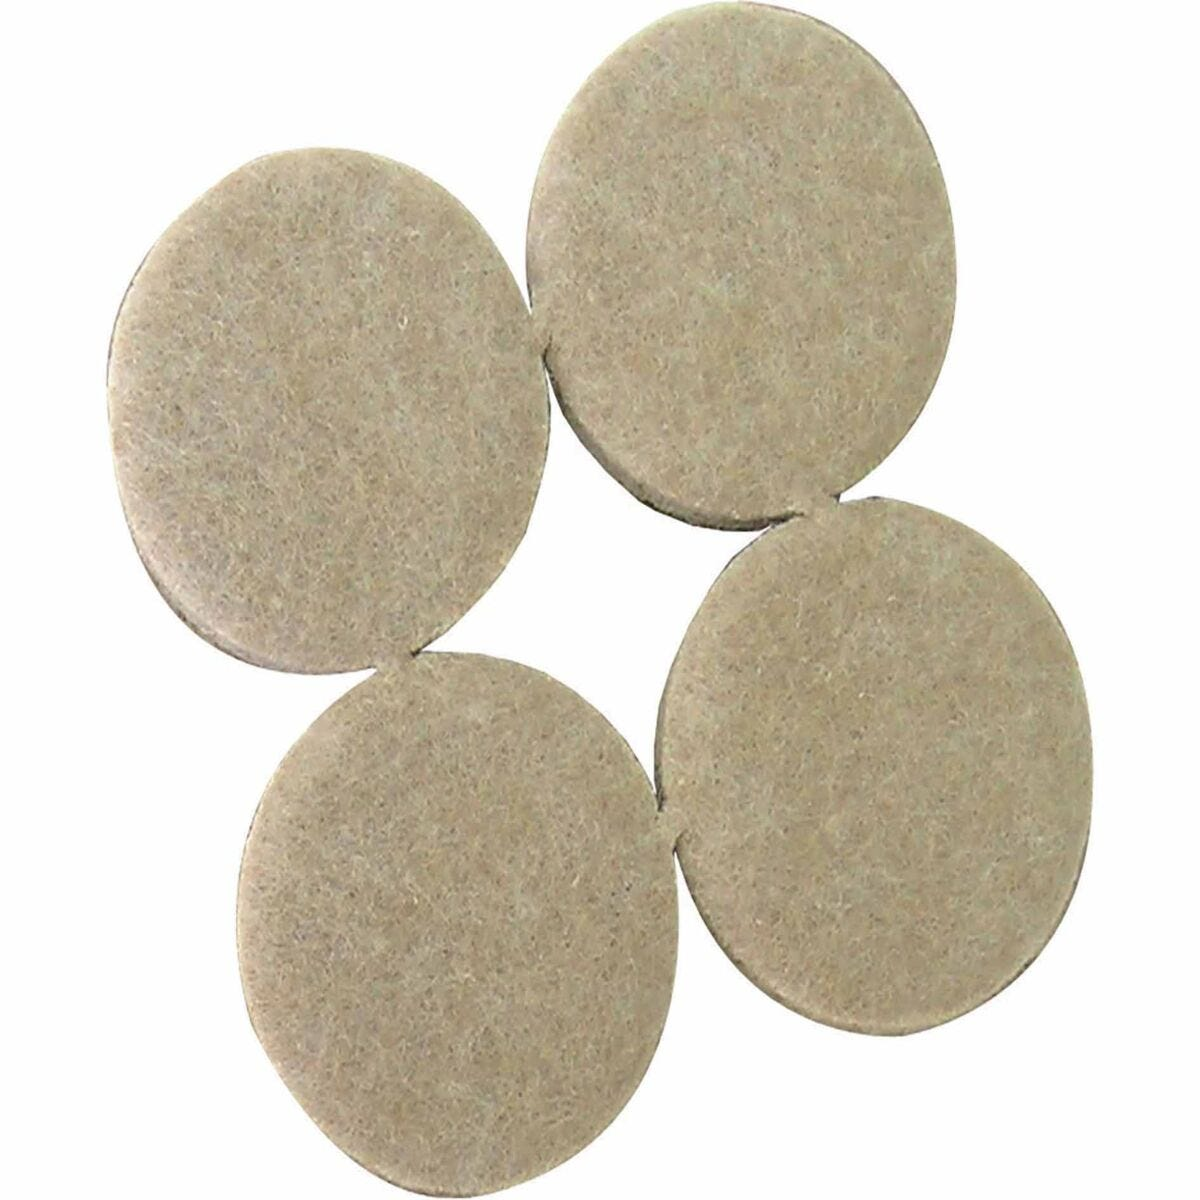 Floor Felt Protection Pads Medium Pack of 10